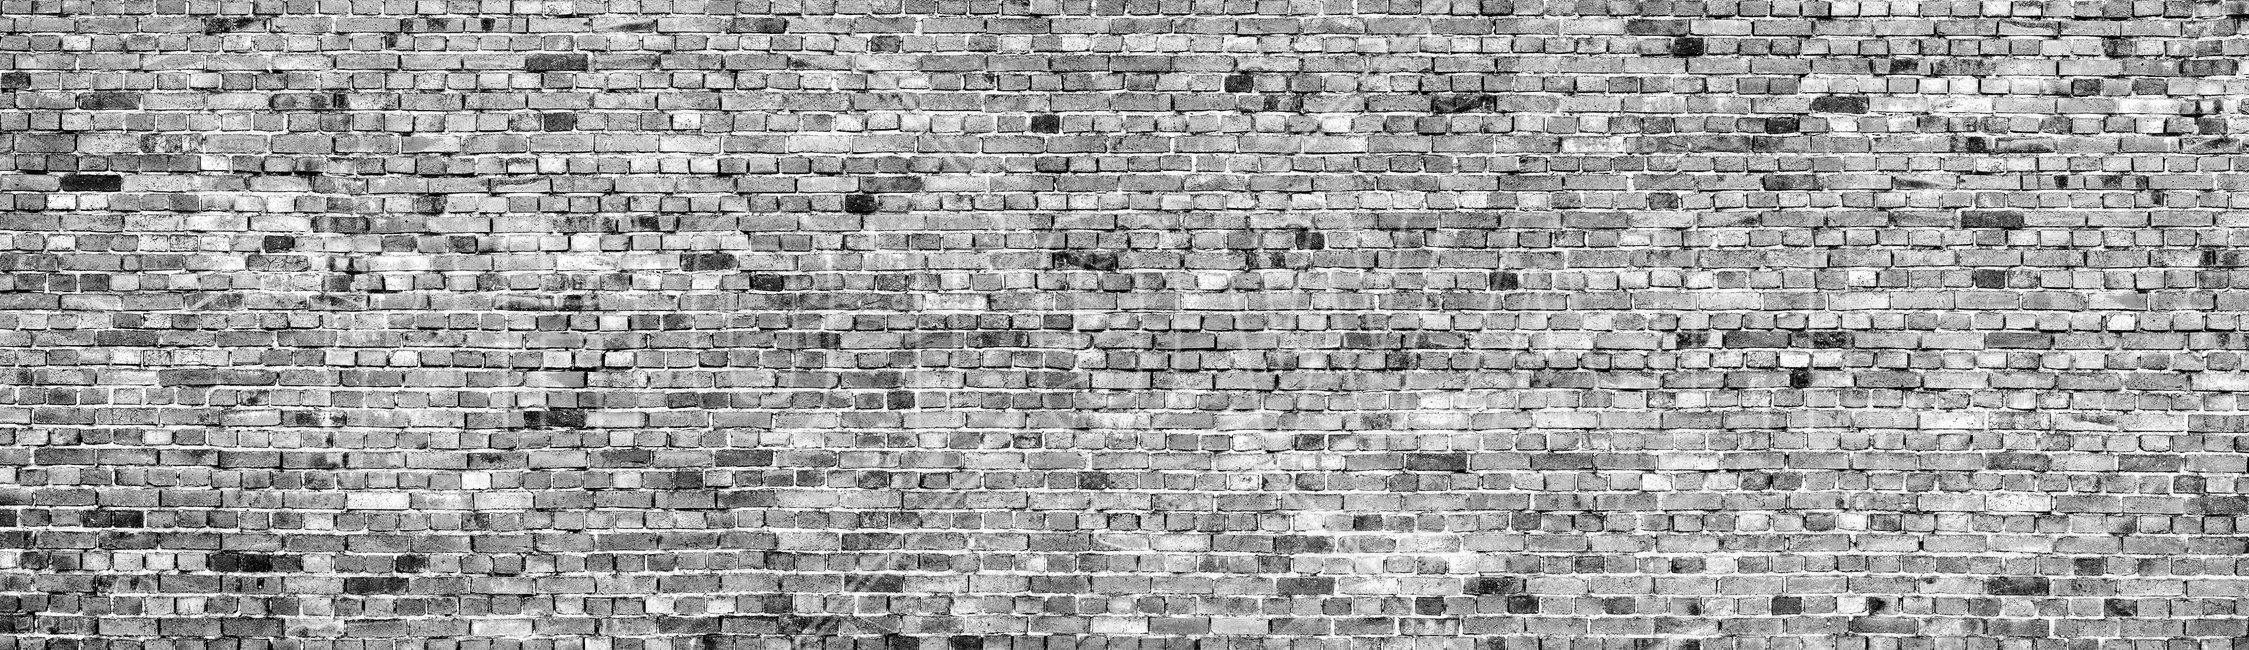 Stockholm Brick Wall - Black and White Fototapeter & Tapeter 100 x 100 cm